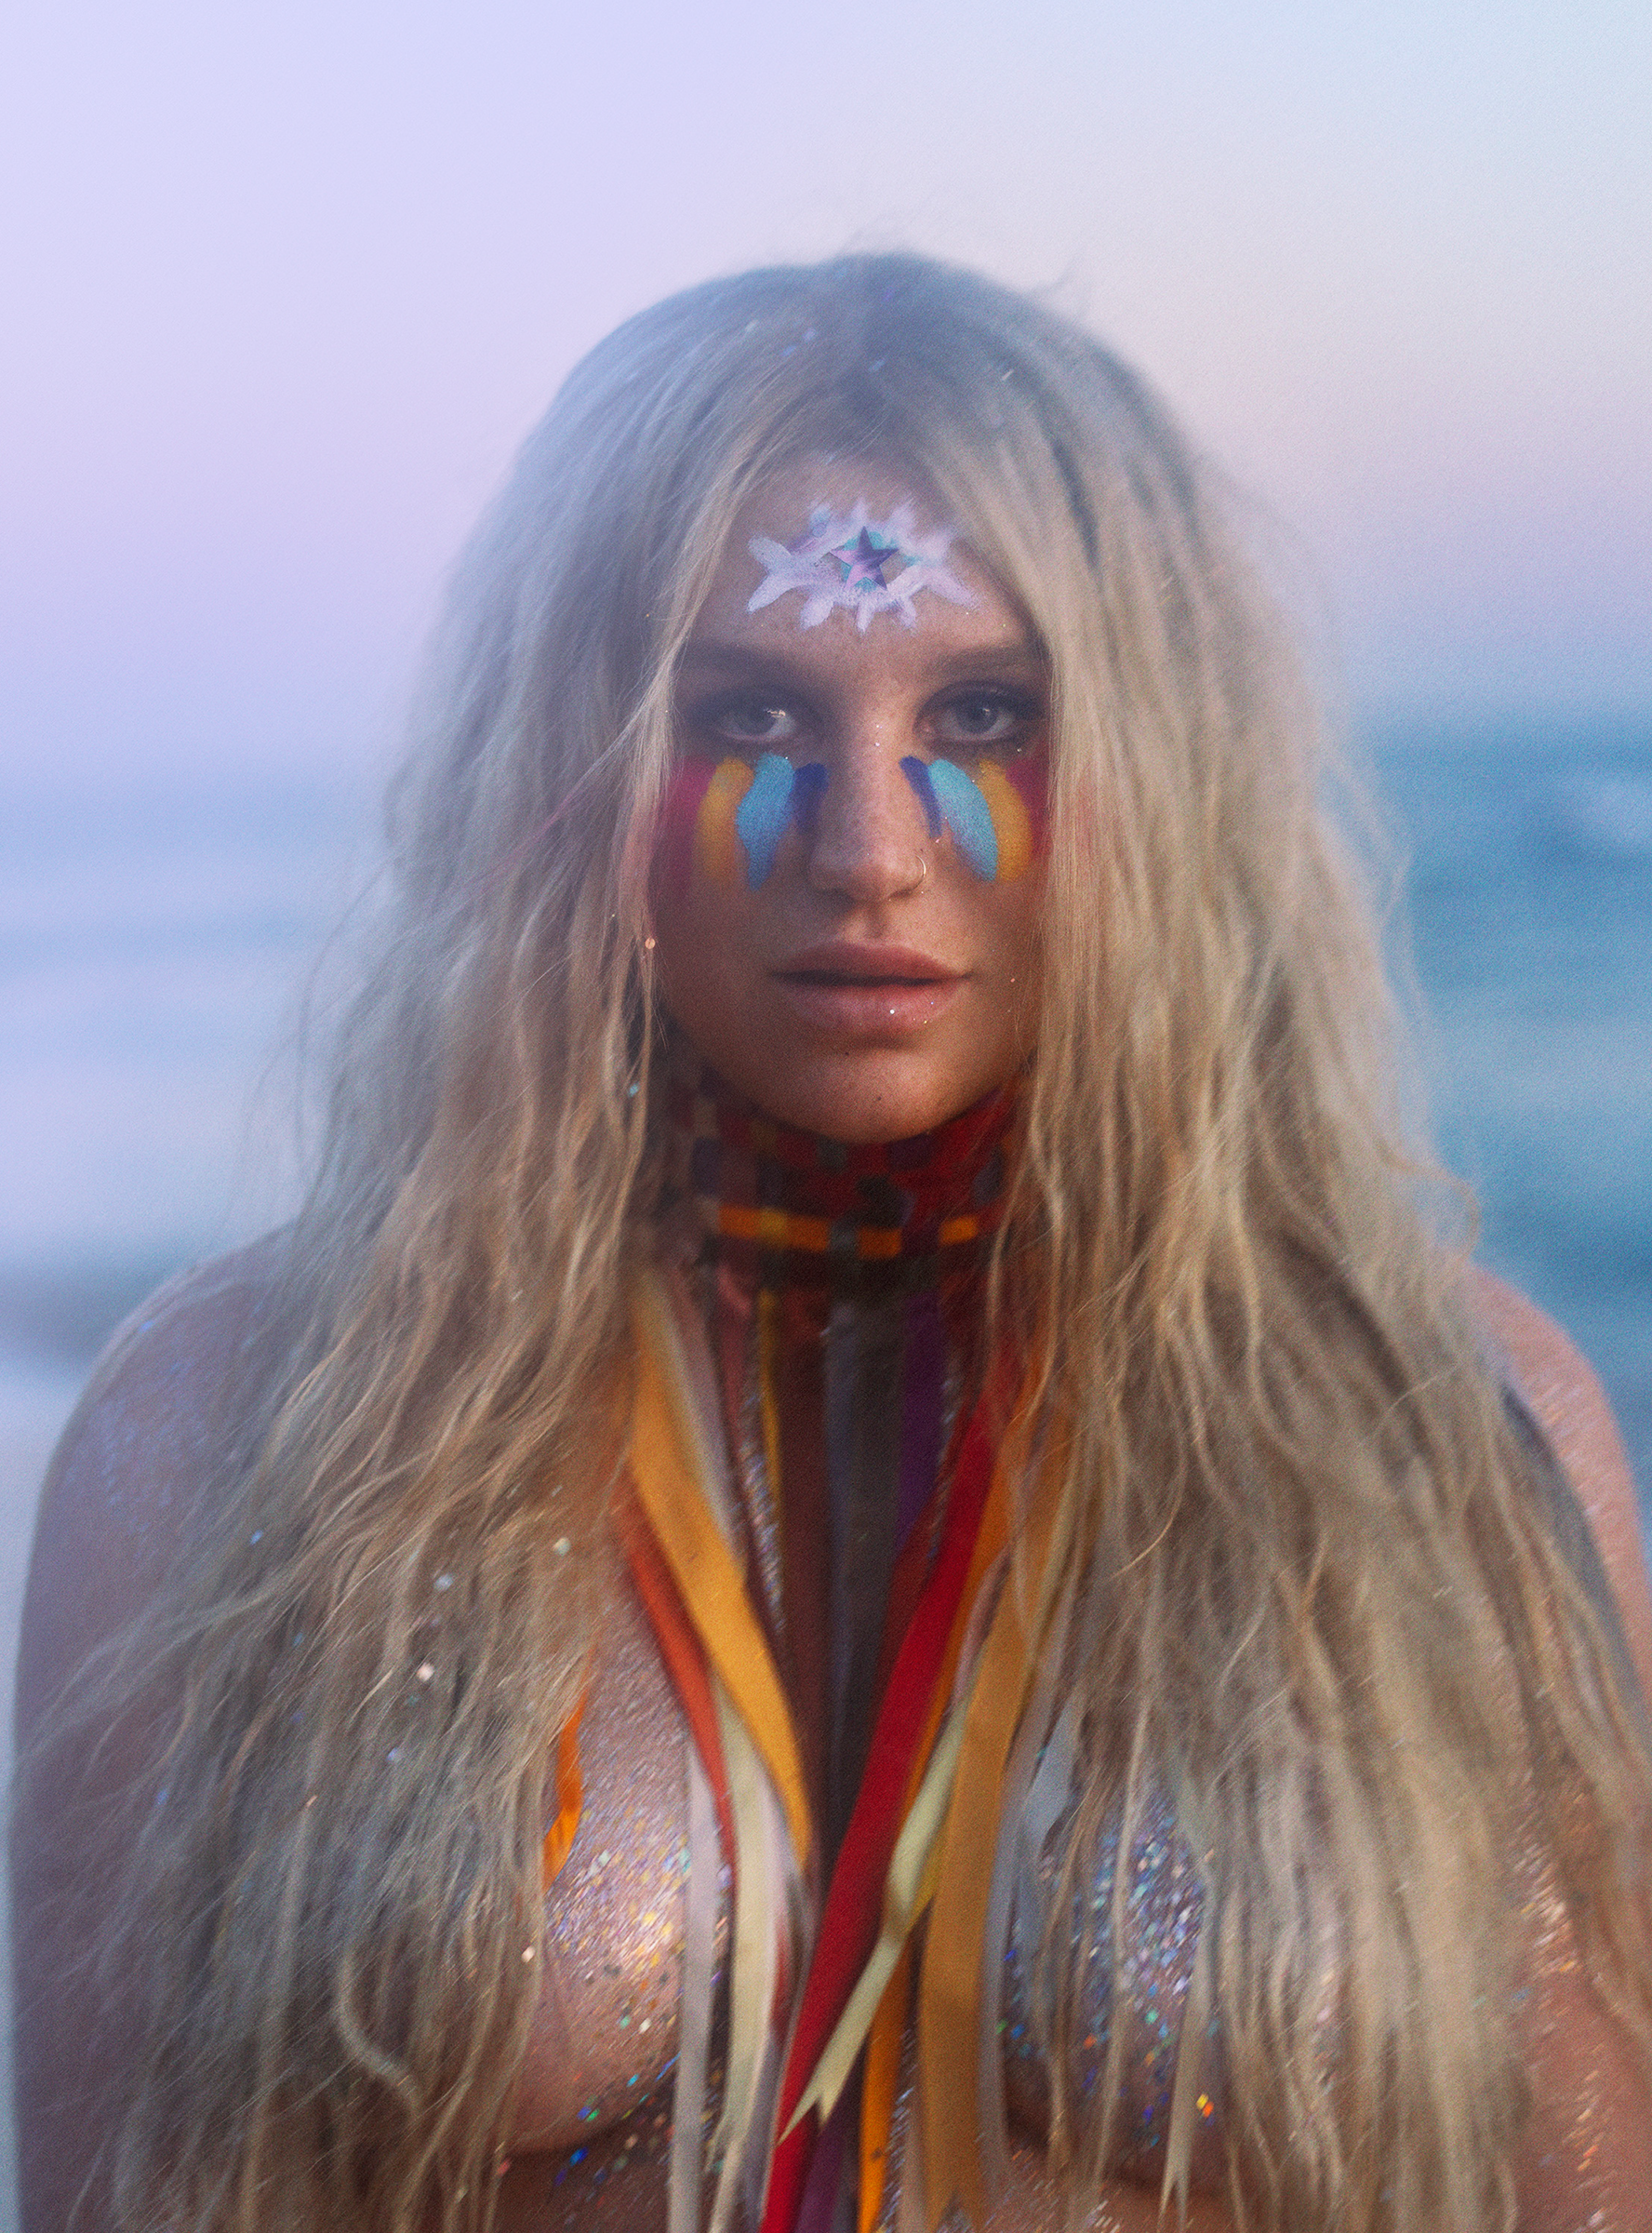 Kesha Nude Leaked Photos Collection - 7 Photos - 2019 year